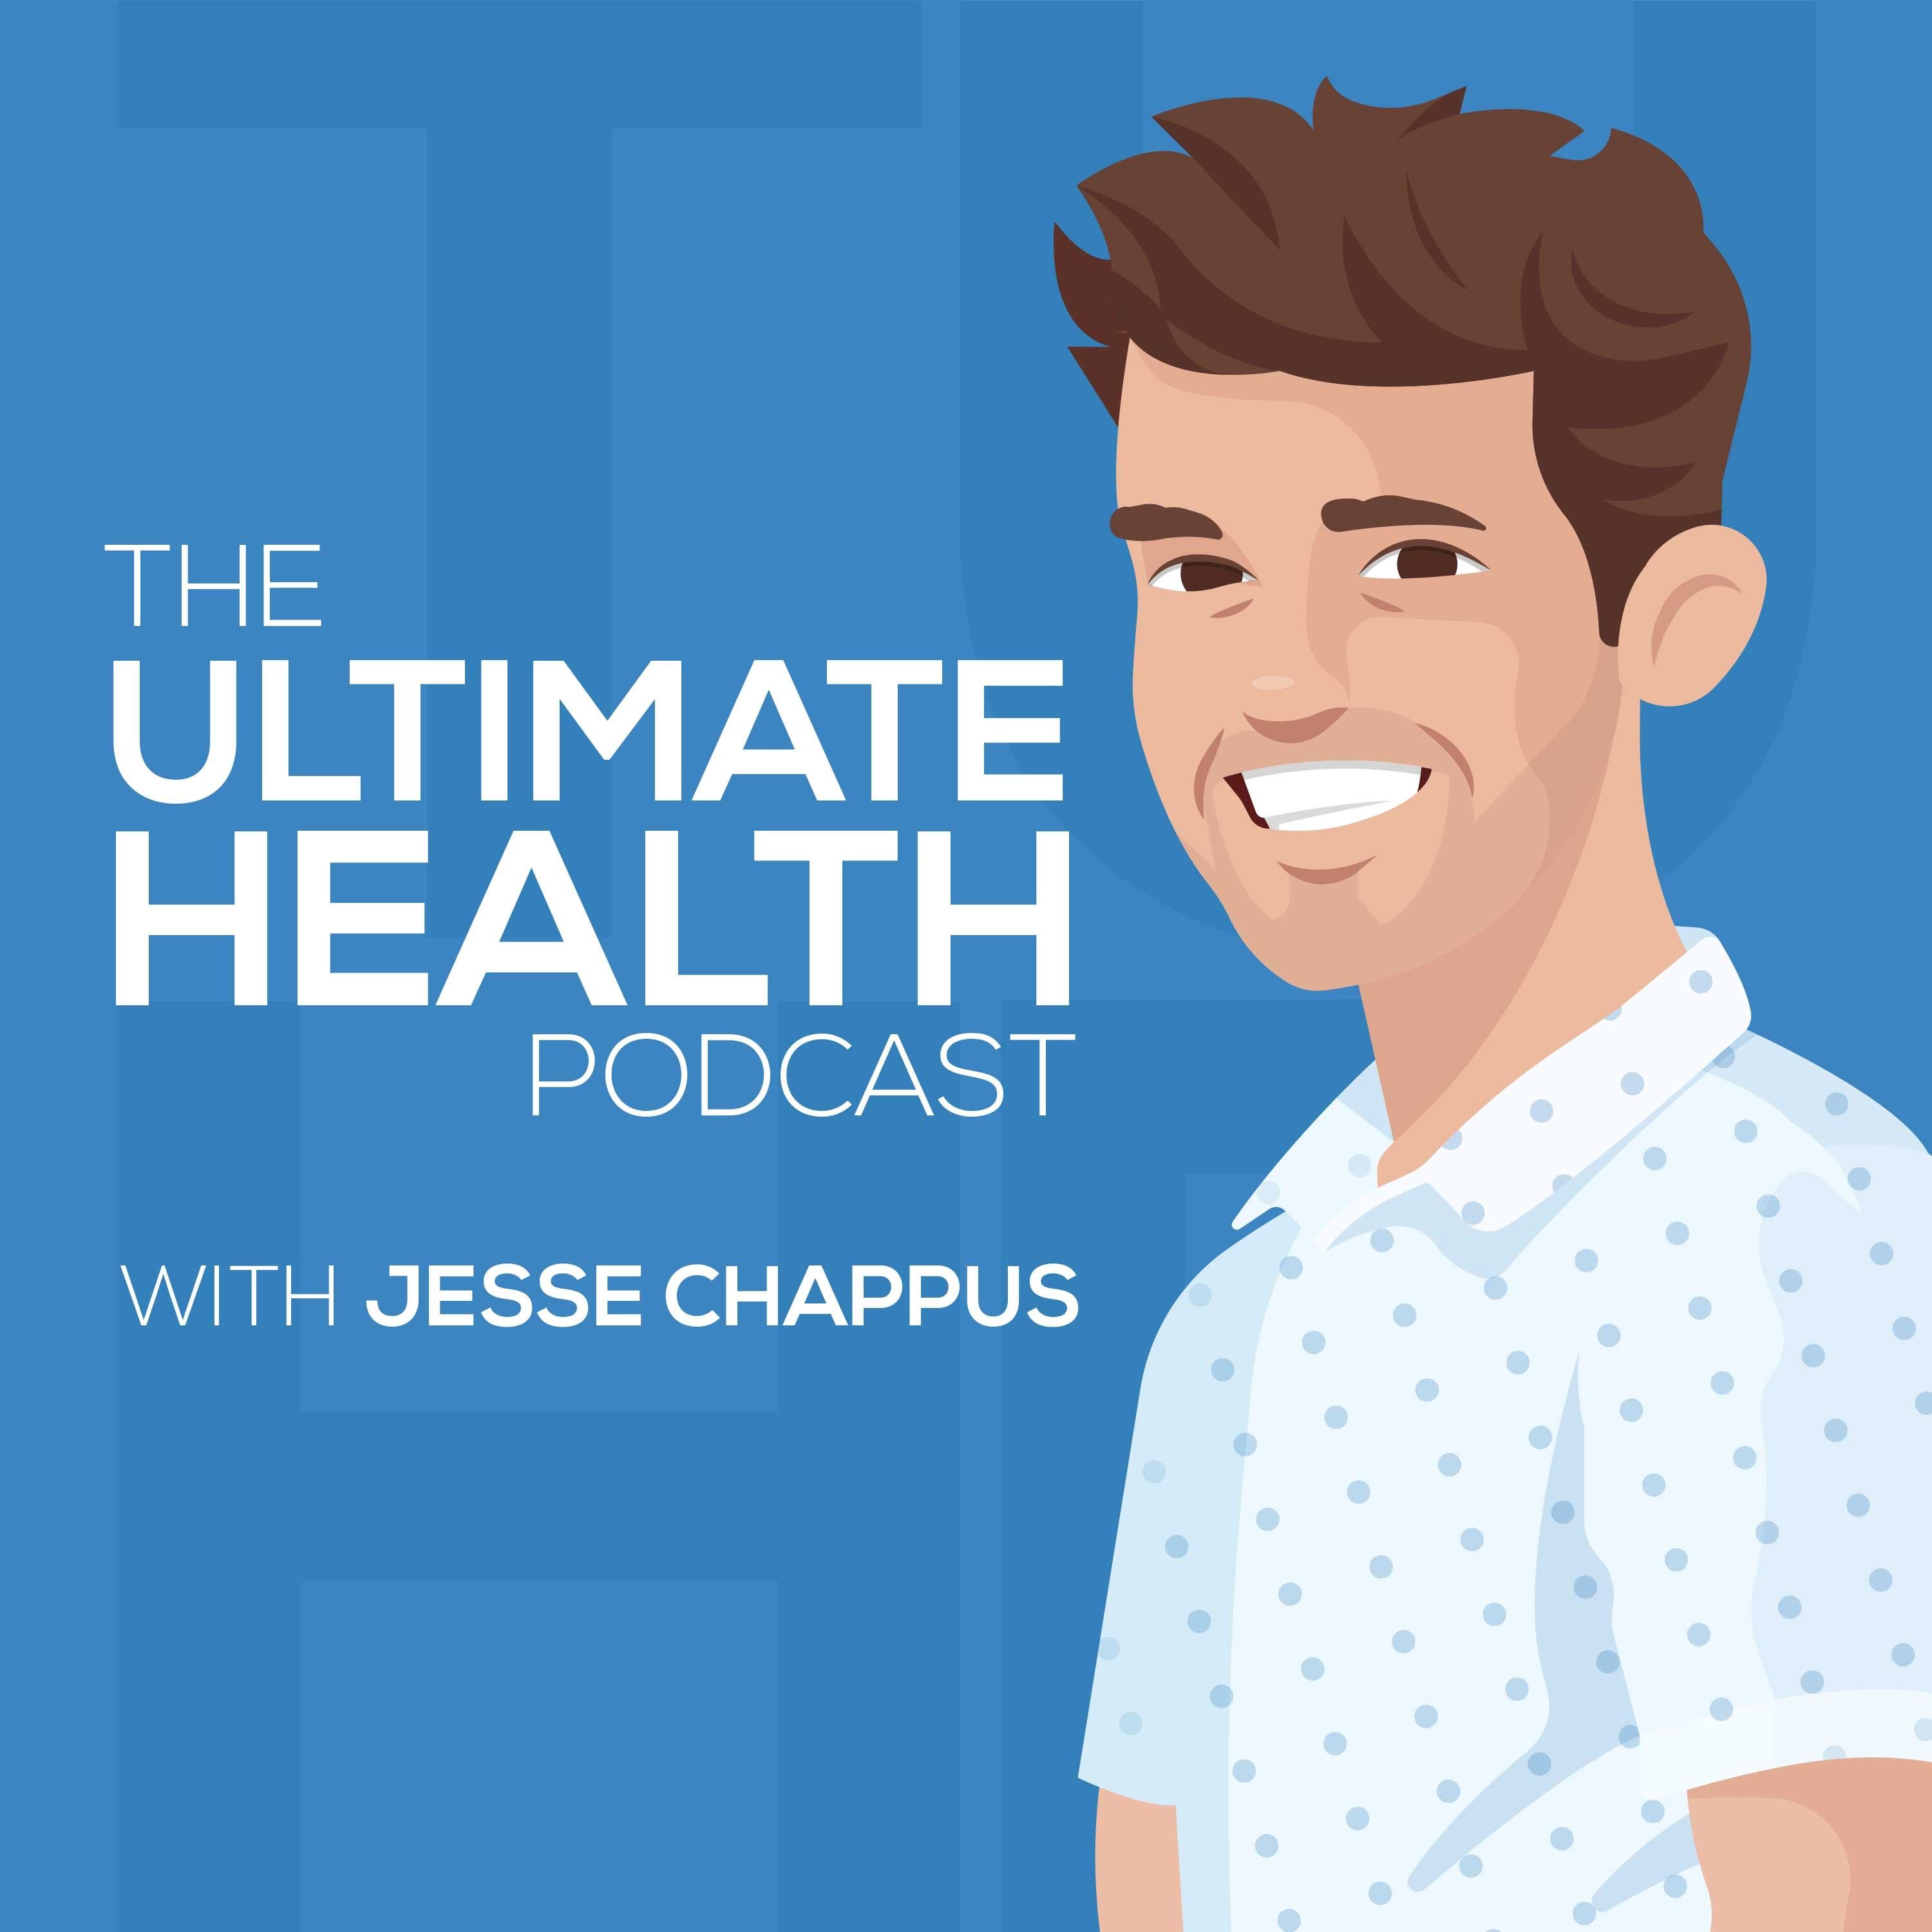 The Ultimate Health Podcast: Wellness, Nutrition, Fitness, & Exercise